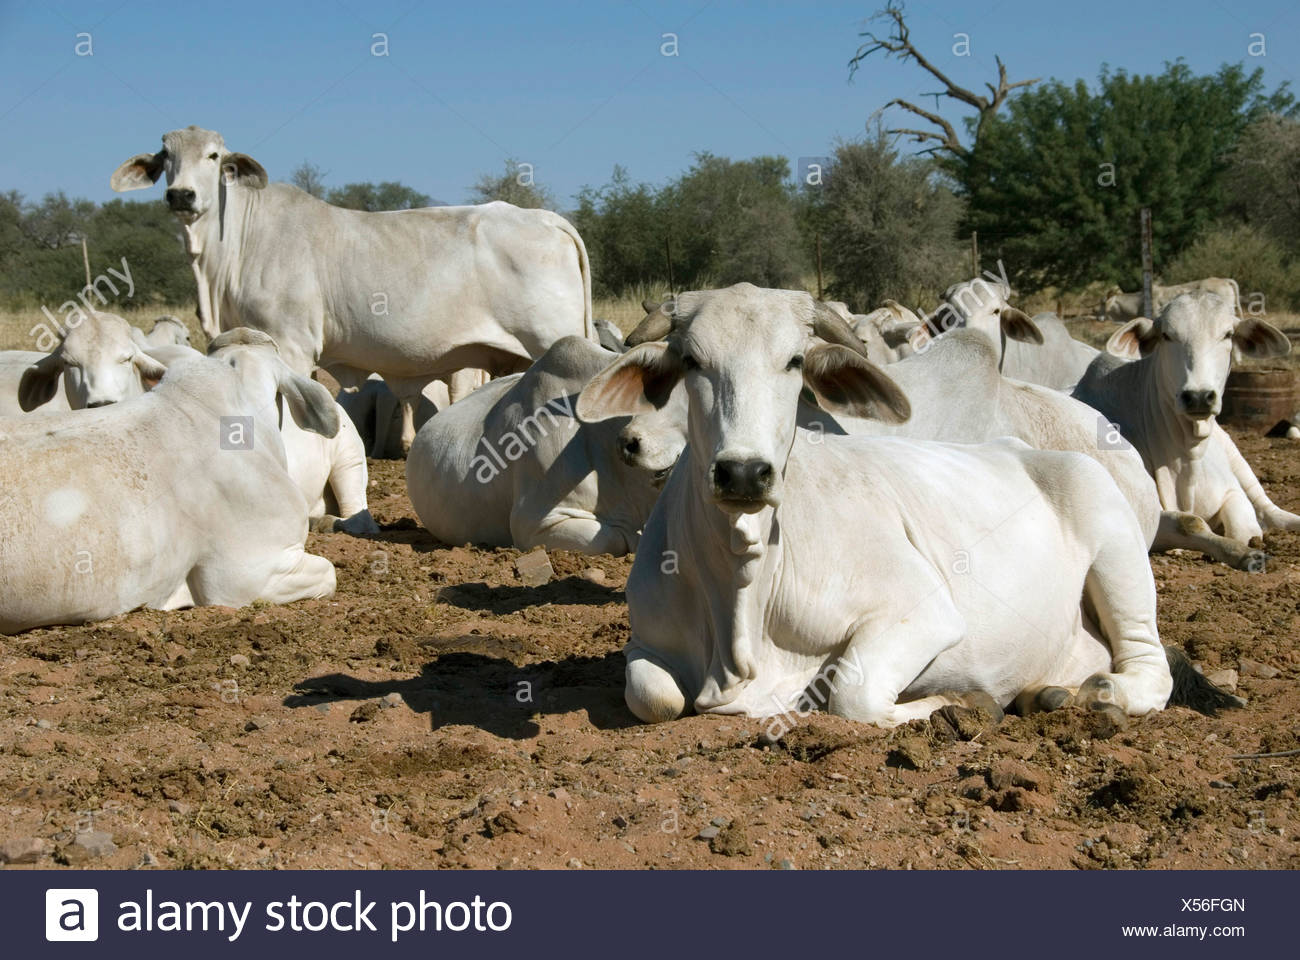 domestic cattle (Bos primigenius f. taurus), white cows resting ruminating, Namibia - Stock Image